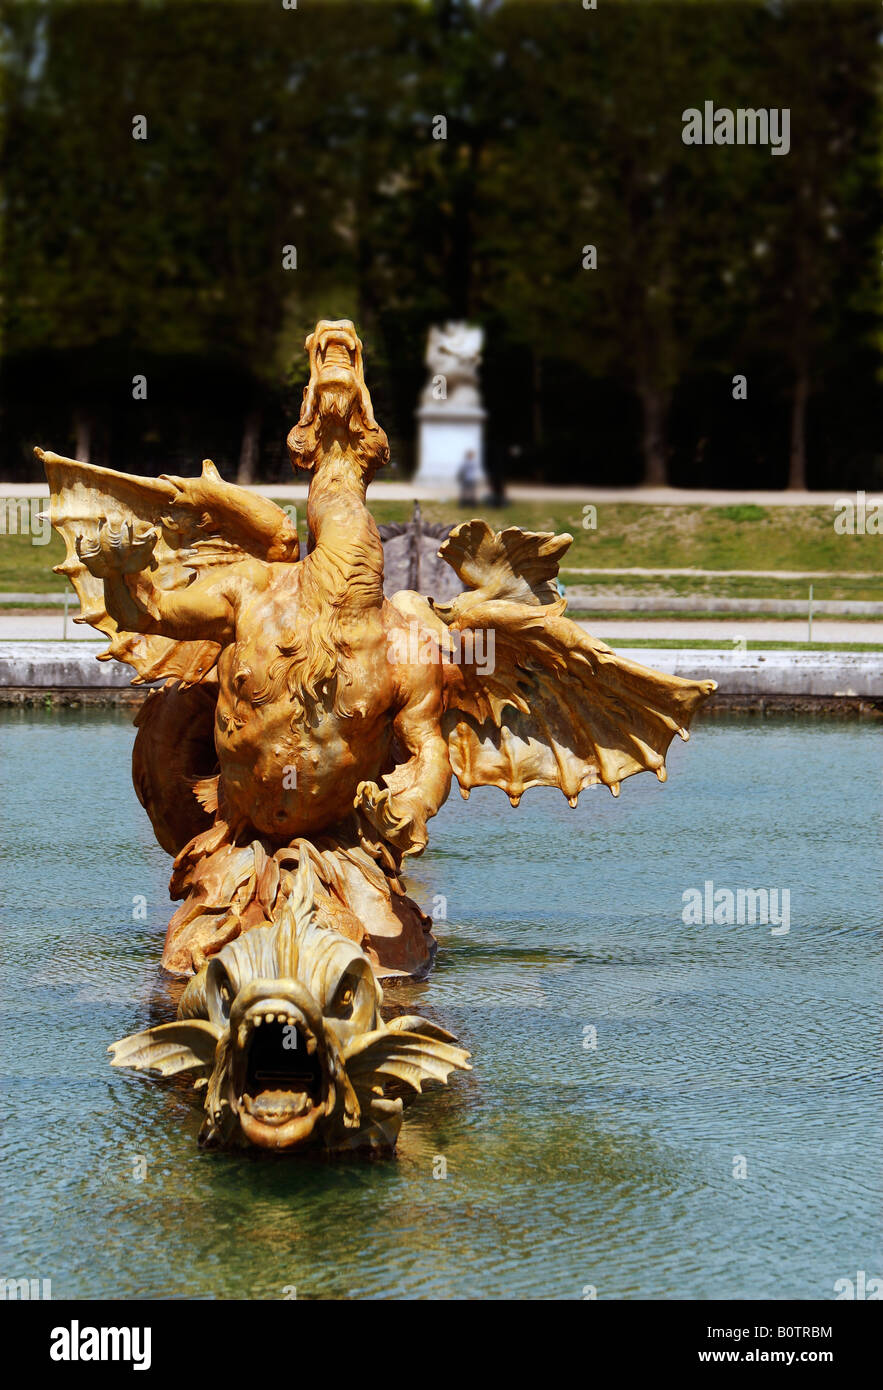 The winged Dragon fountain in the gardens of Versailles Paris France - Stock Image